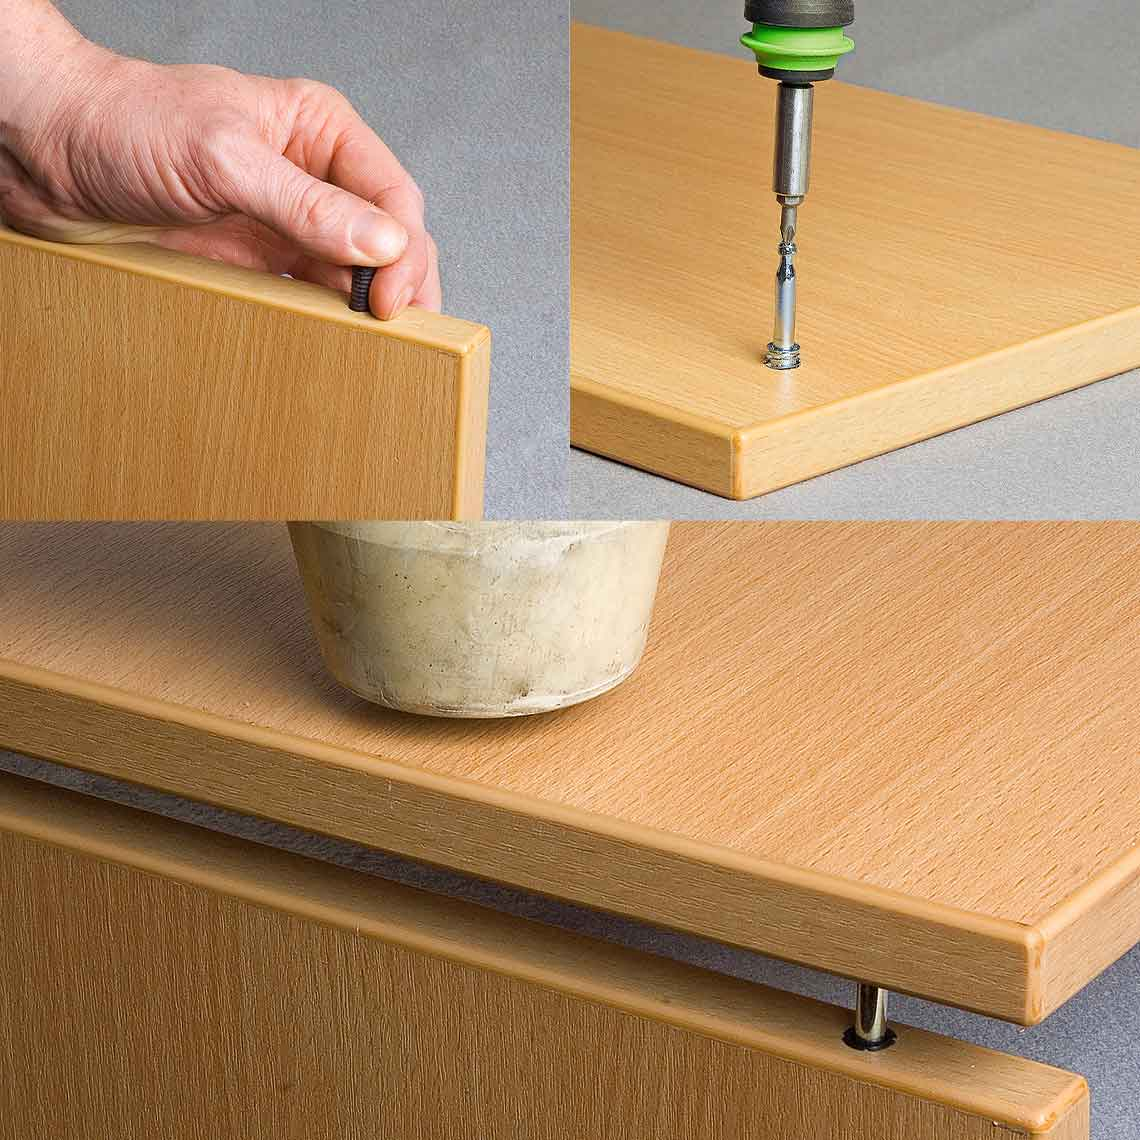 QUICK-SET Locking Dowels for Cabinets